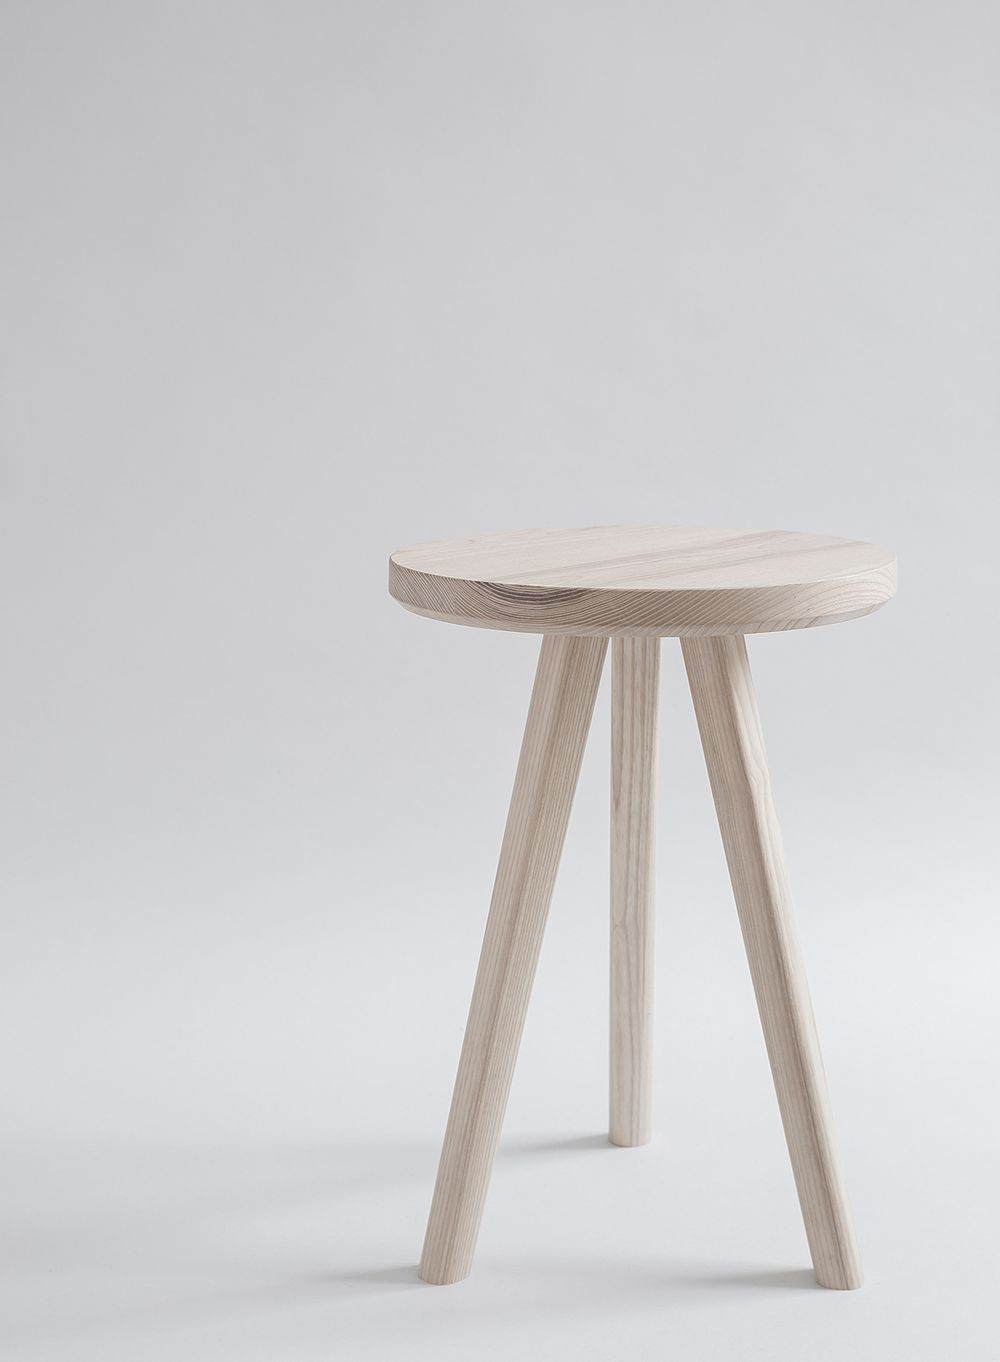 Stool Ash Stool By Melo Stool Furniture Upholstered Swivel Chairs